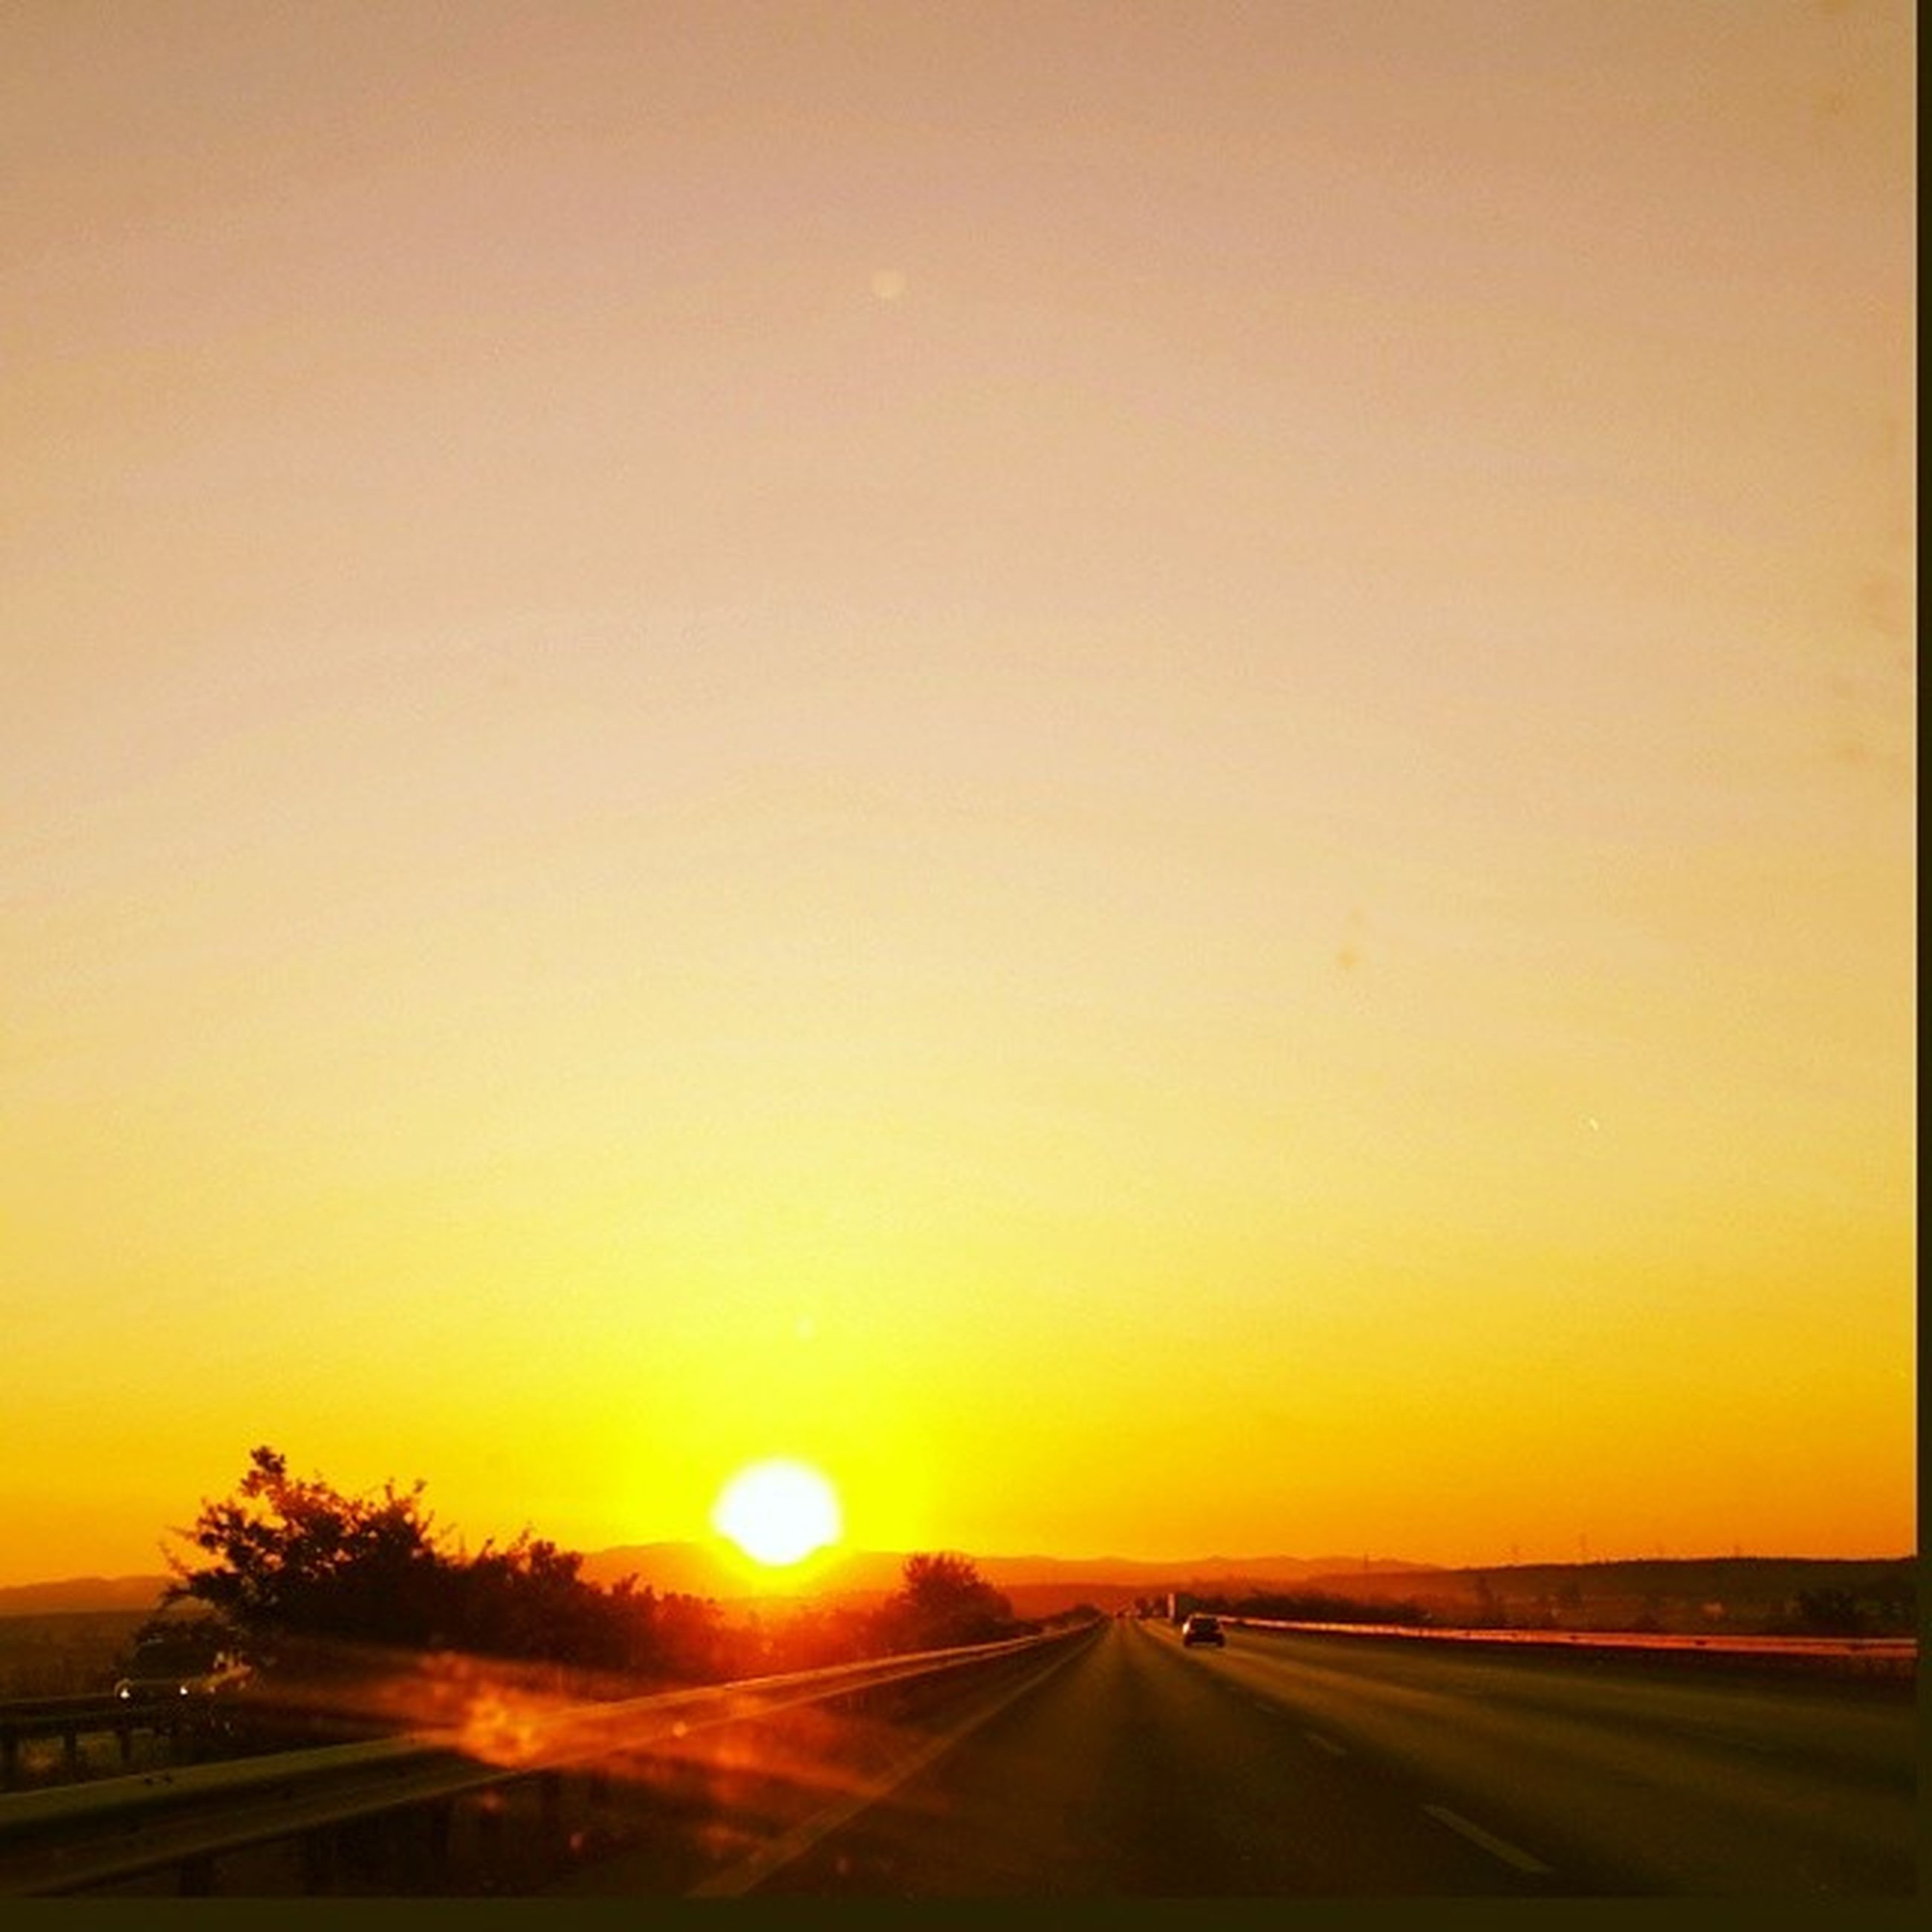 transportation, sunset, road, the way forward, car, diminishing perspective, orange color, sun, land vehicle, road marking, mode of transport, vanishing point, clear sky, copy space, sky, beauty in nature, nature, country road, street, scenics